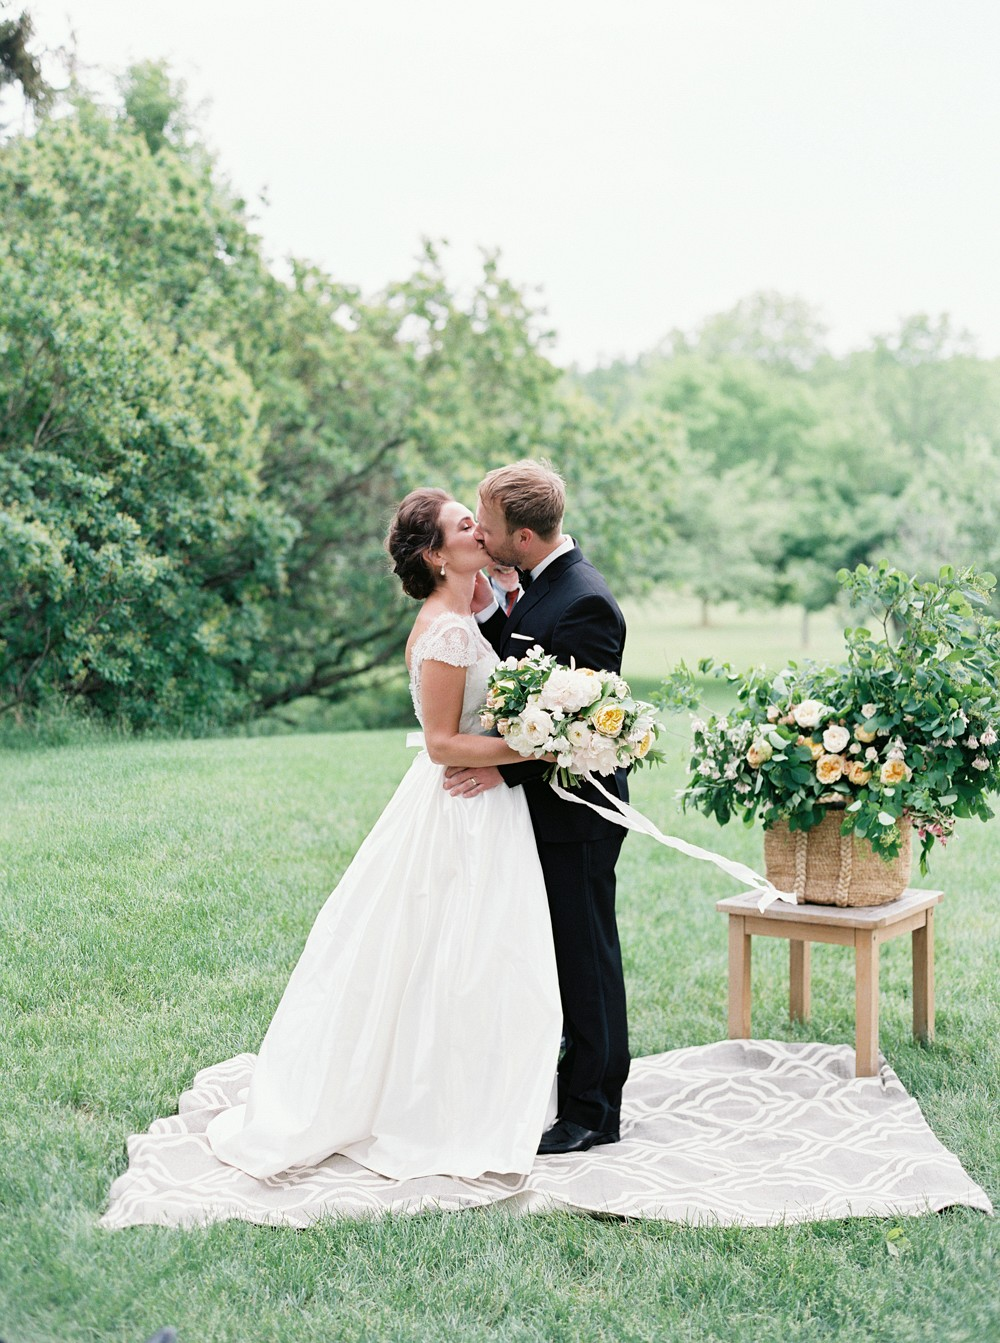 Sophisticated Real Wedding in Ontario by When He Found Her on Wedding Sparrow